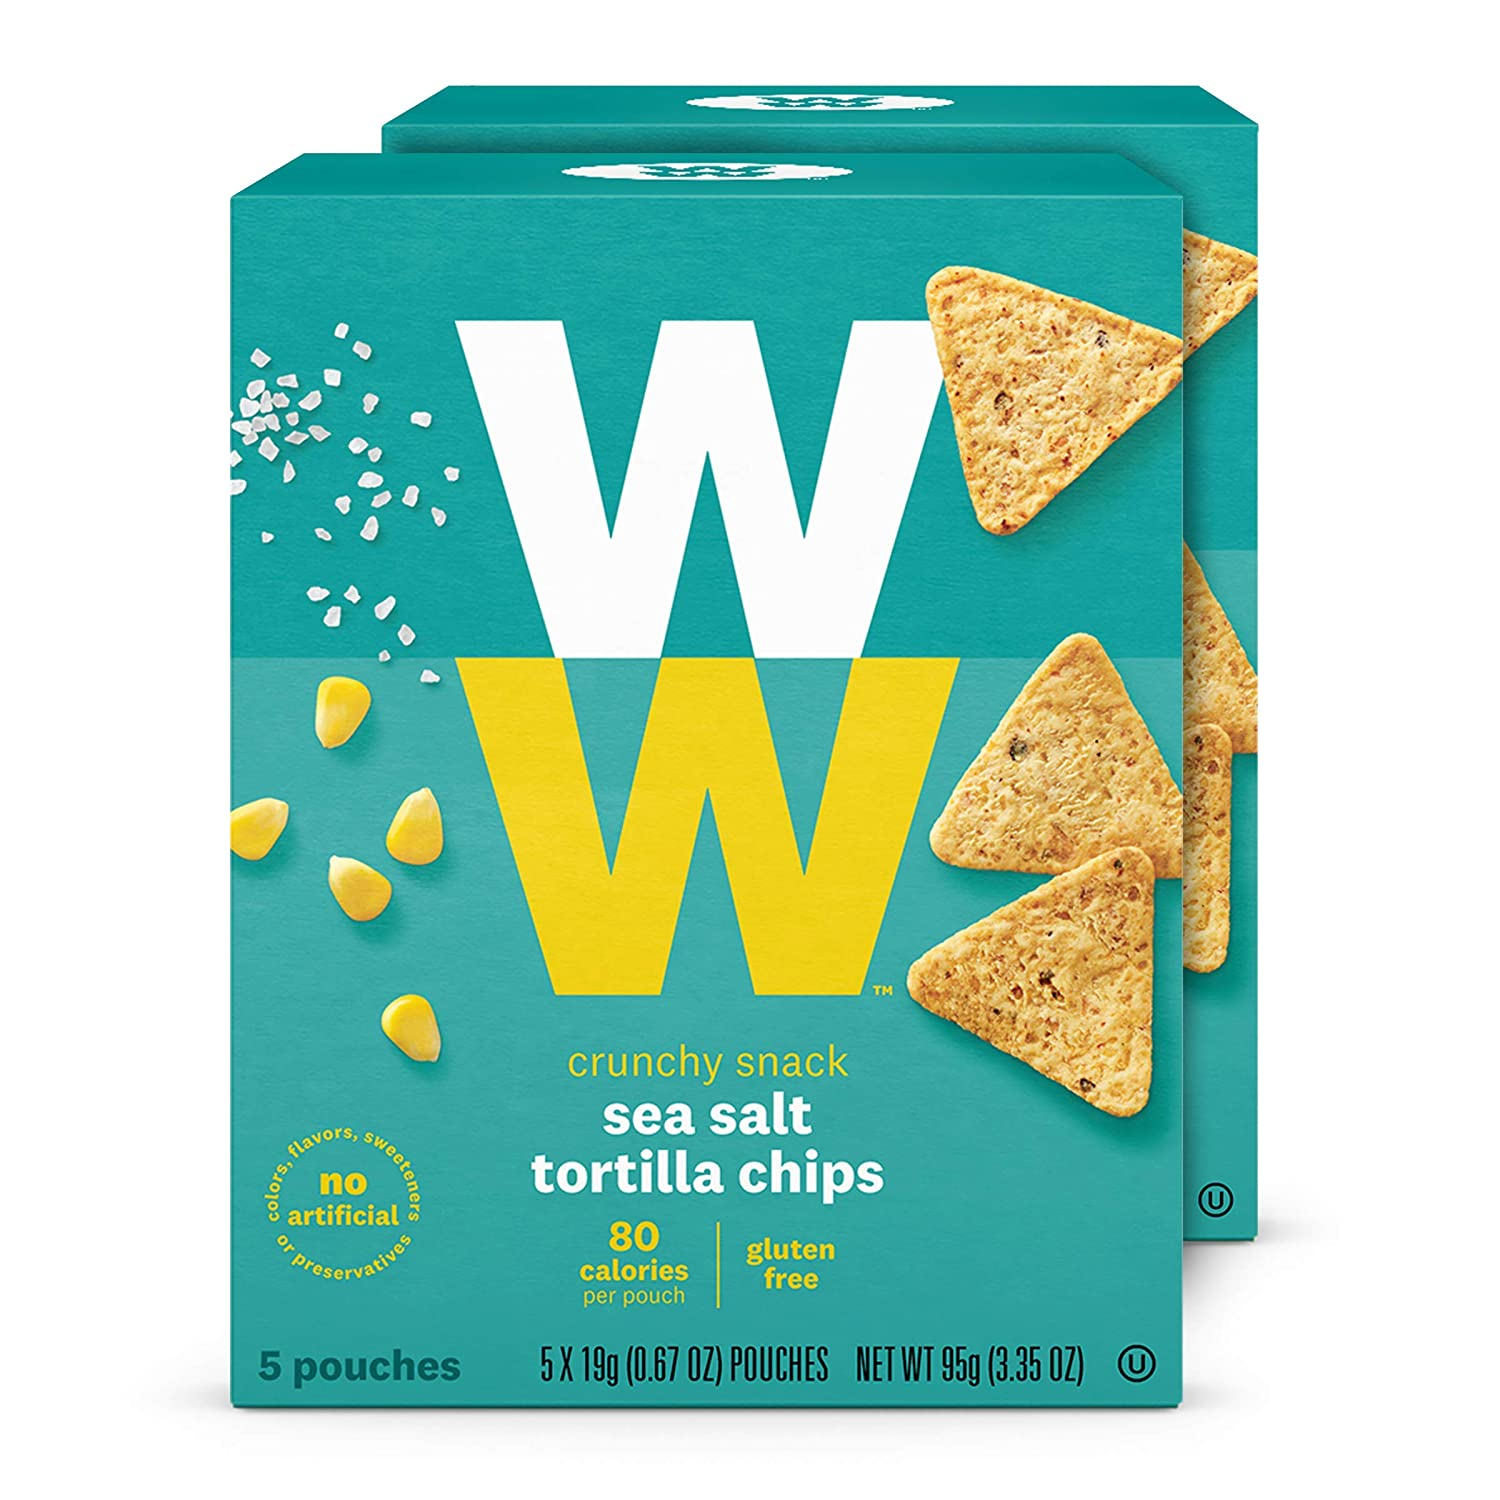 WW Sea Salt Mini Tortilla Chips - 2 SmartPoints - 2 Boxes (10 Count Total) - Weight Watchers Reimagined